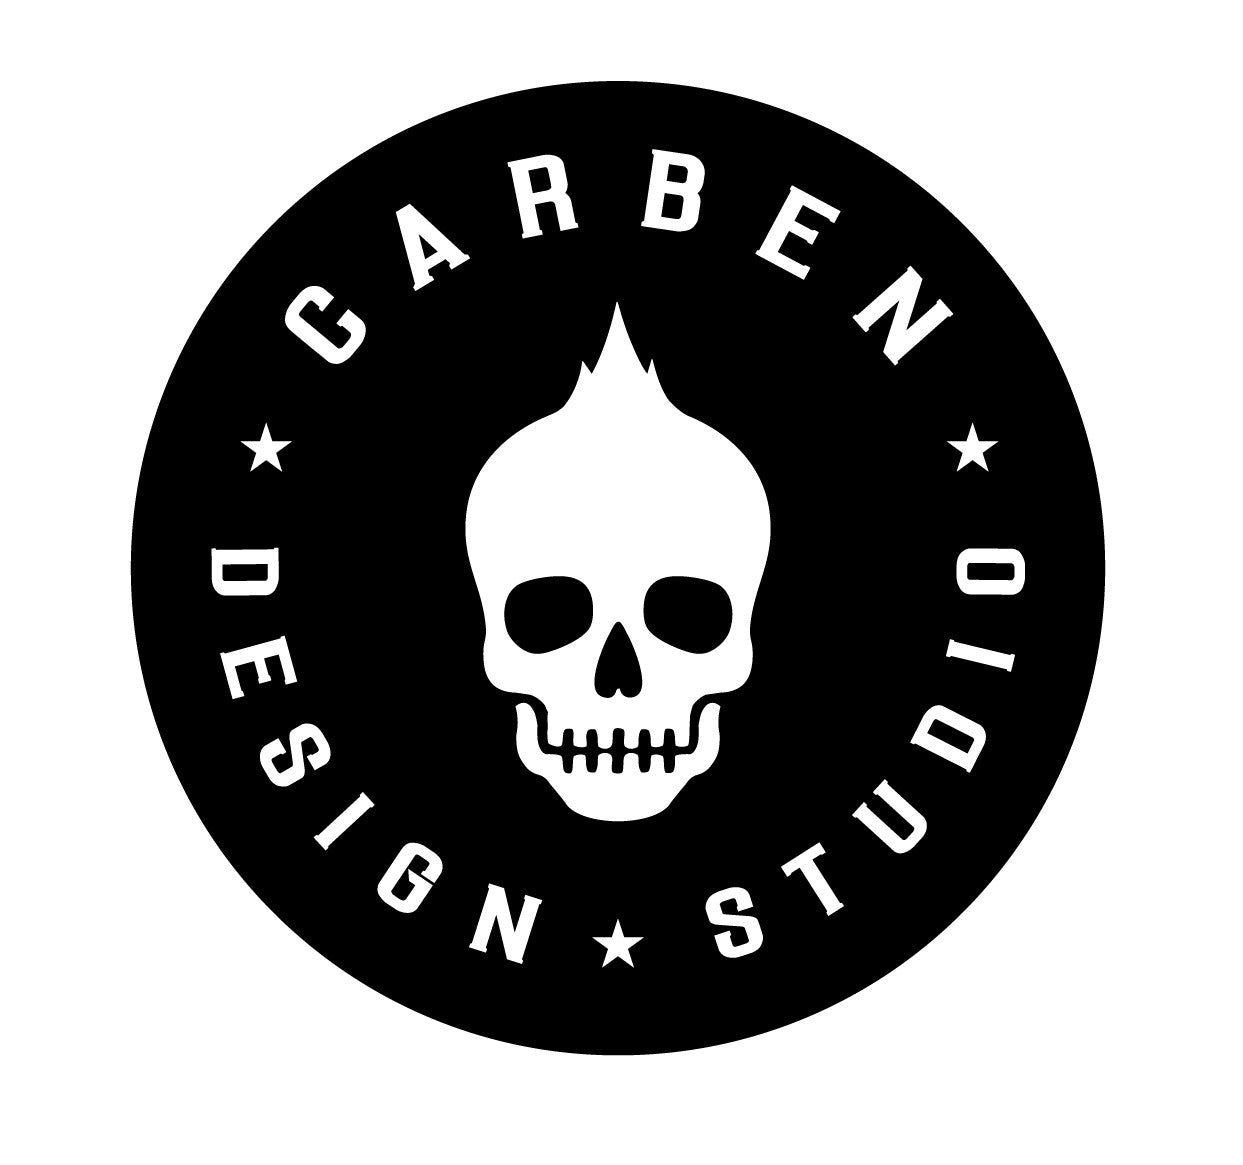 Carben Design Studio